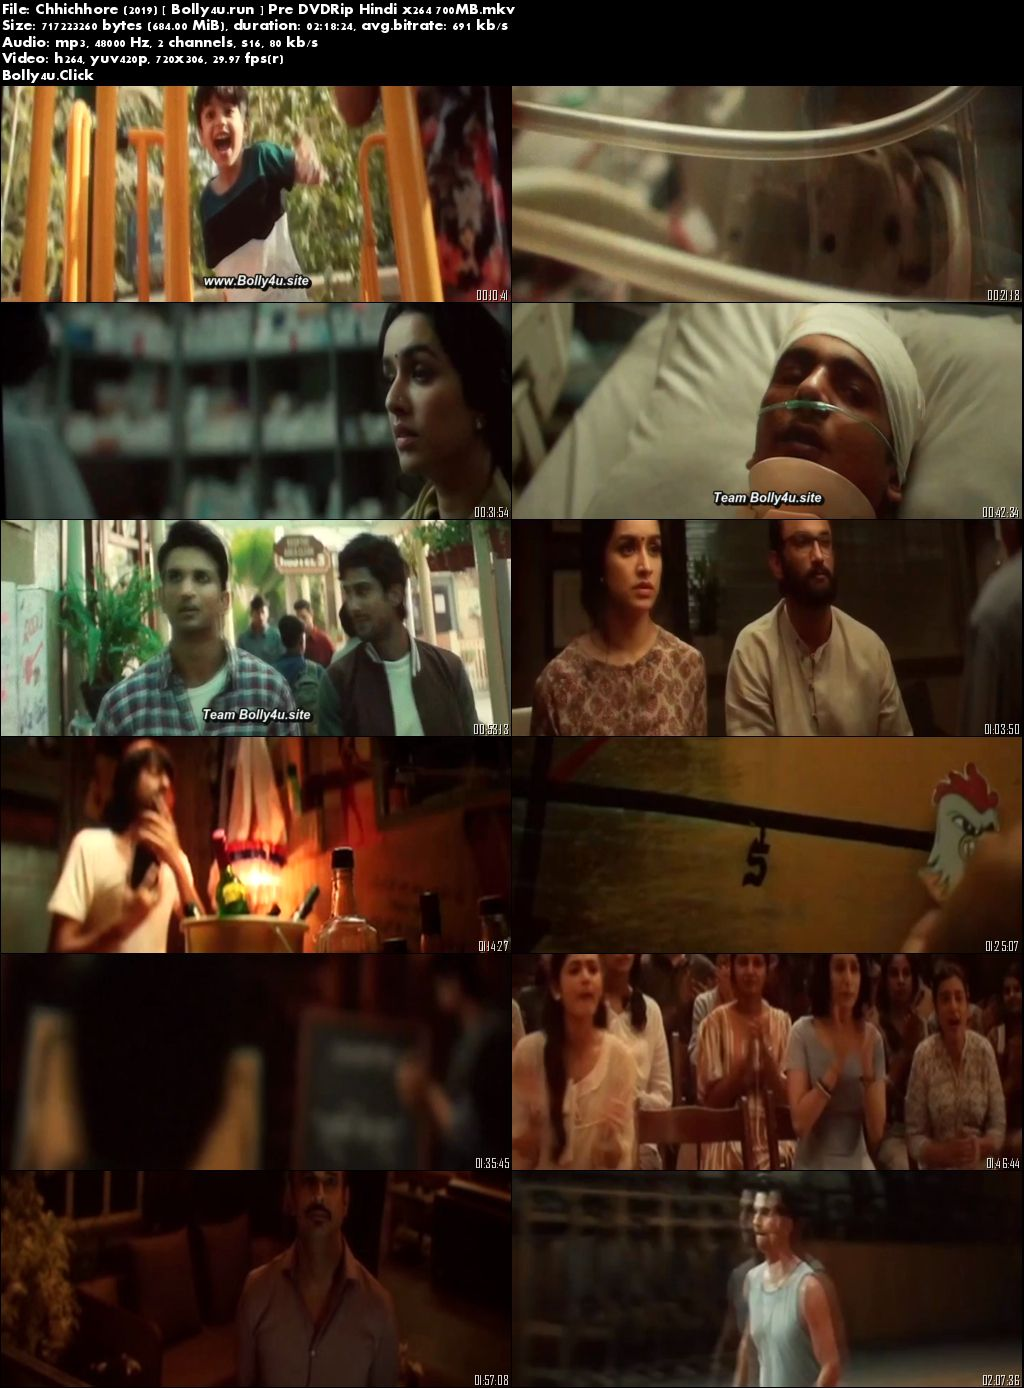 Chhichhore 2019 Pre DVDRip 400Mb Full Hindi Movie Download 480p